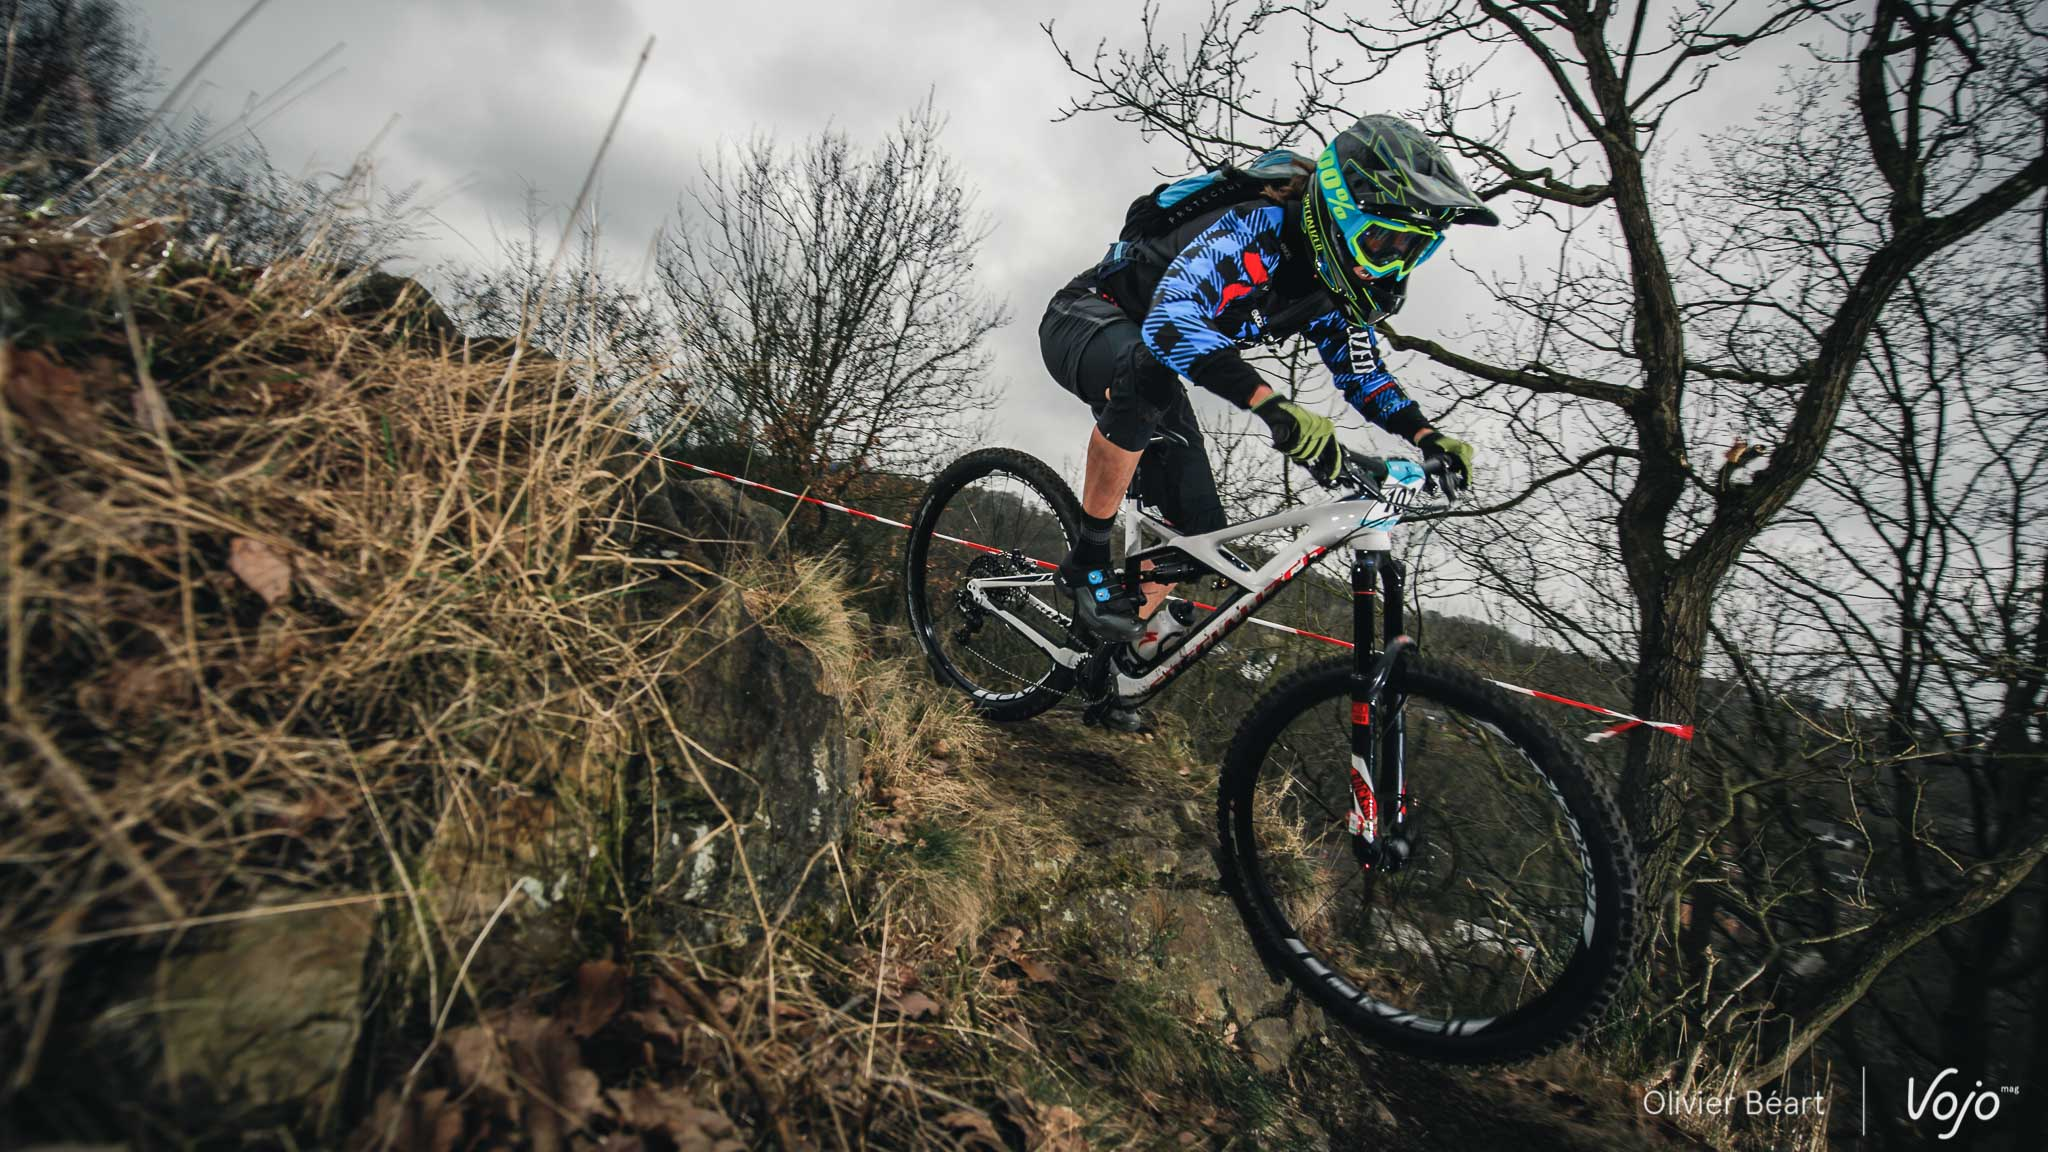 Belgian_Enduro_Cup_Chaudfontaine_2016_Copyright_OBeart_Vojomag-33